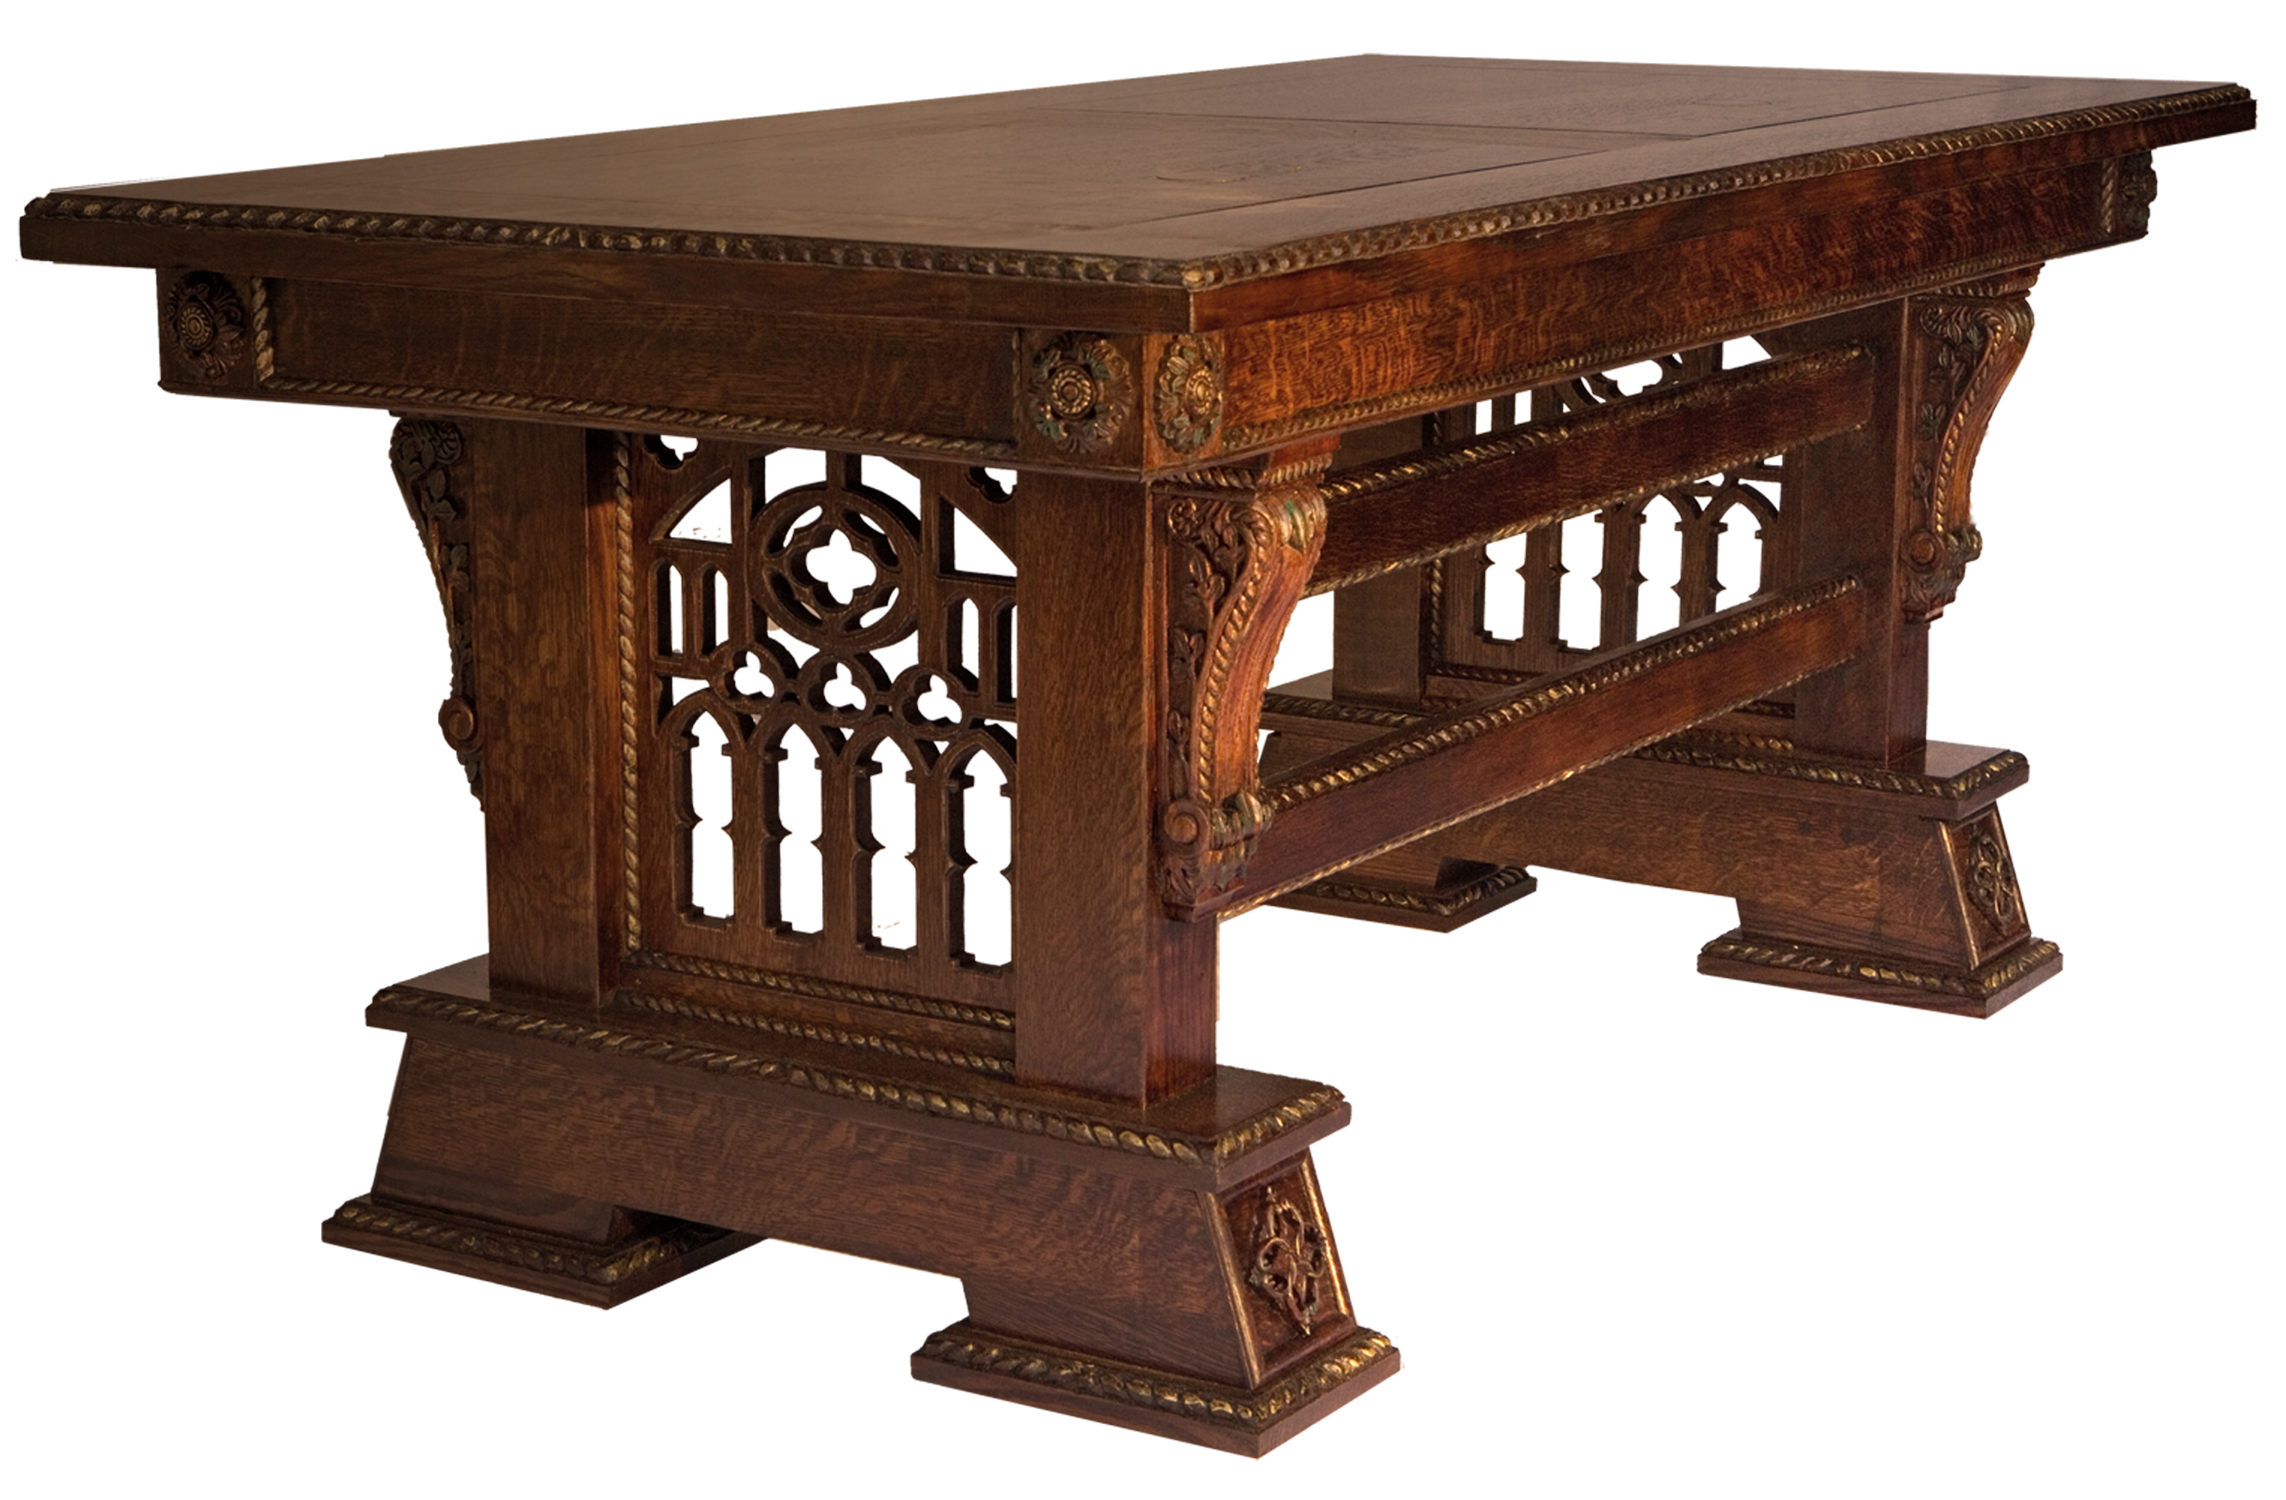 Enjoyable Artisans Of The Valley Hand Crafted Custom Tables Gothic Download Free Architecture Designs Xerocsunscenecom